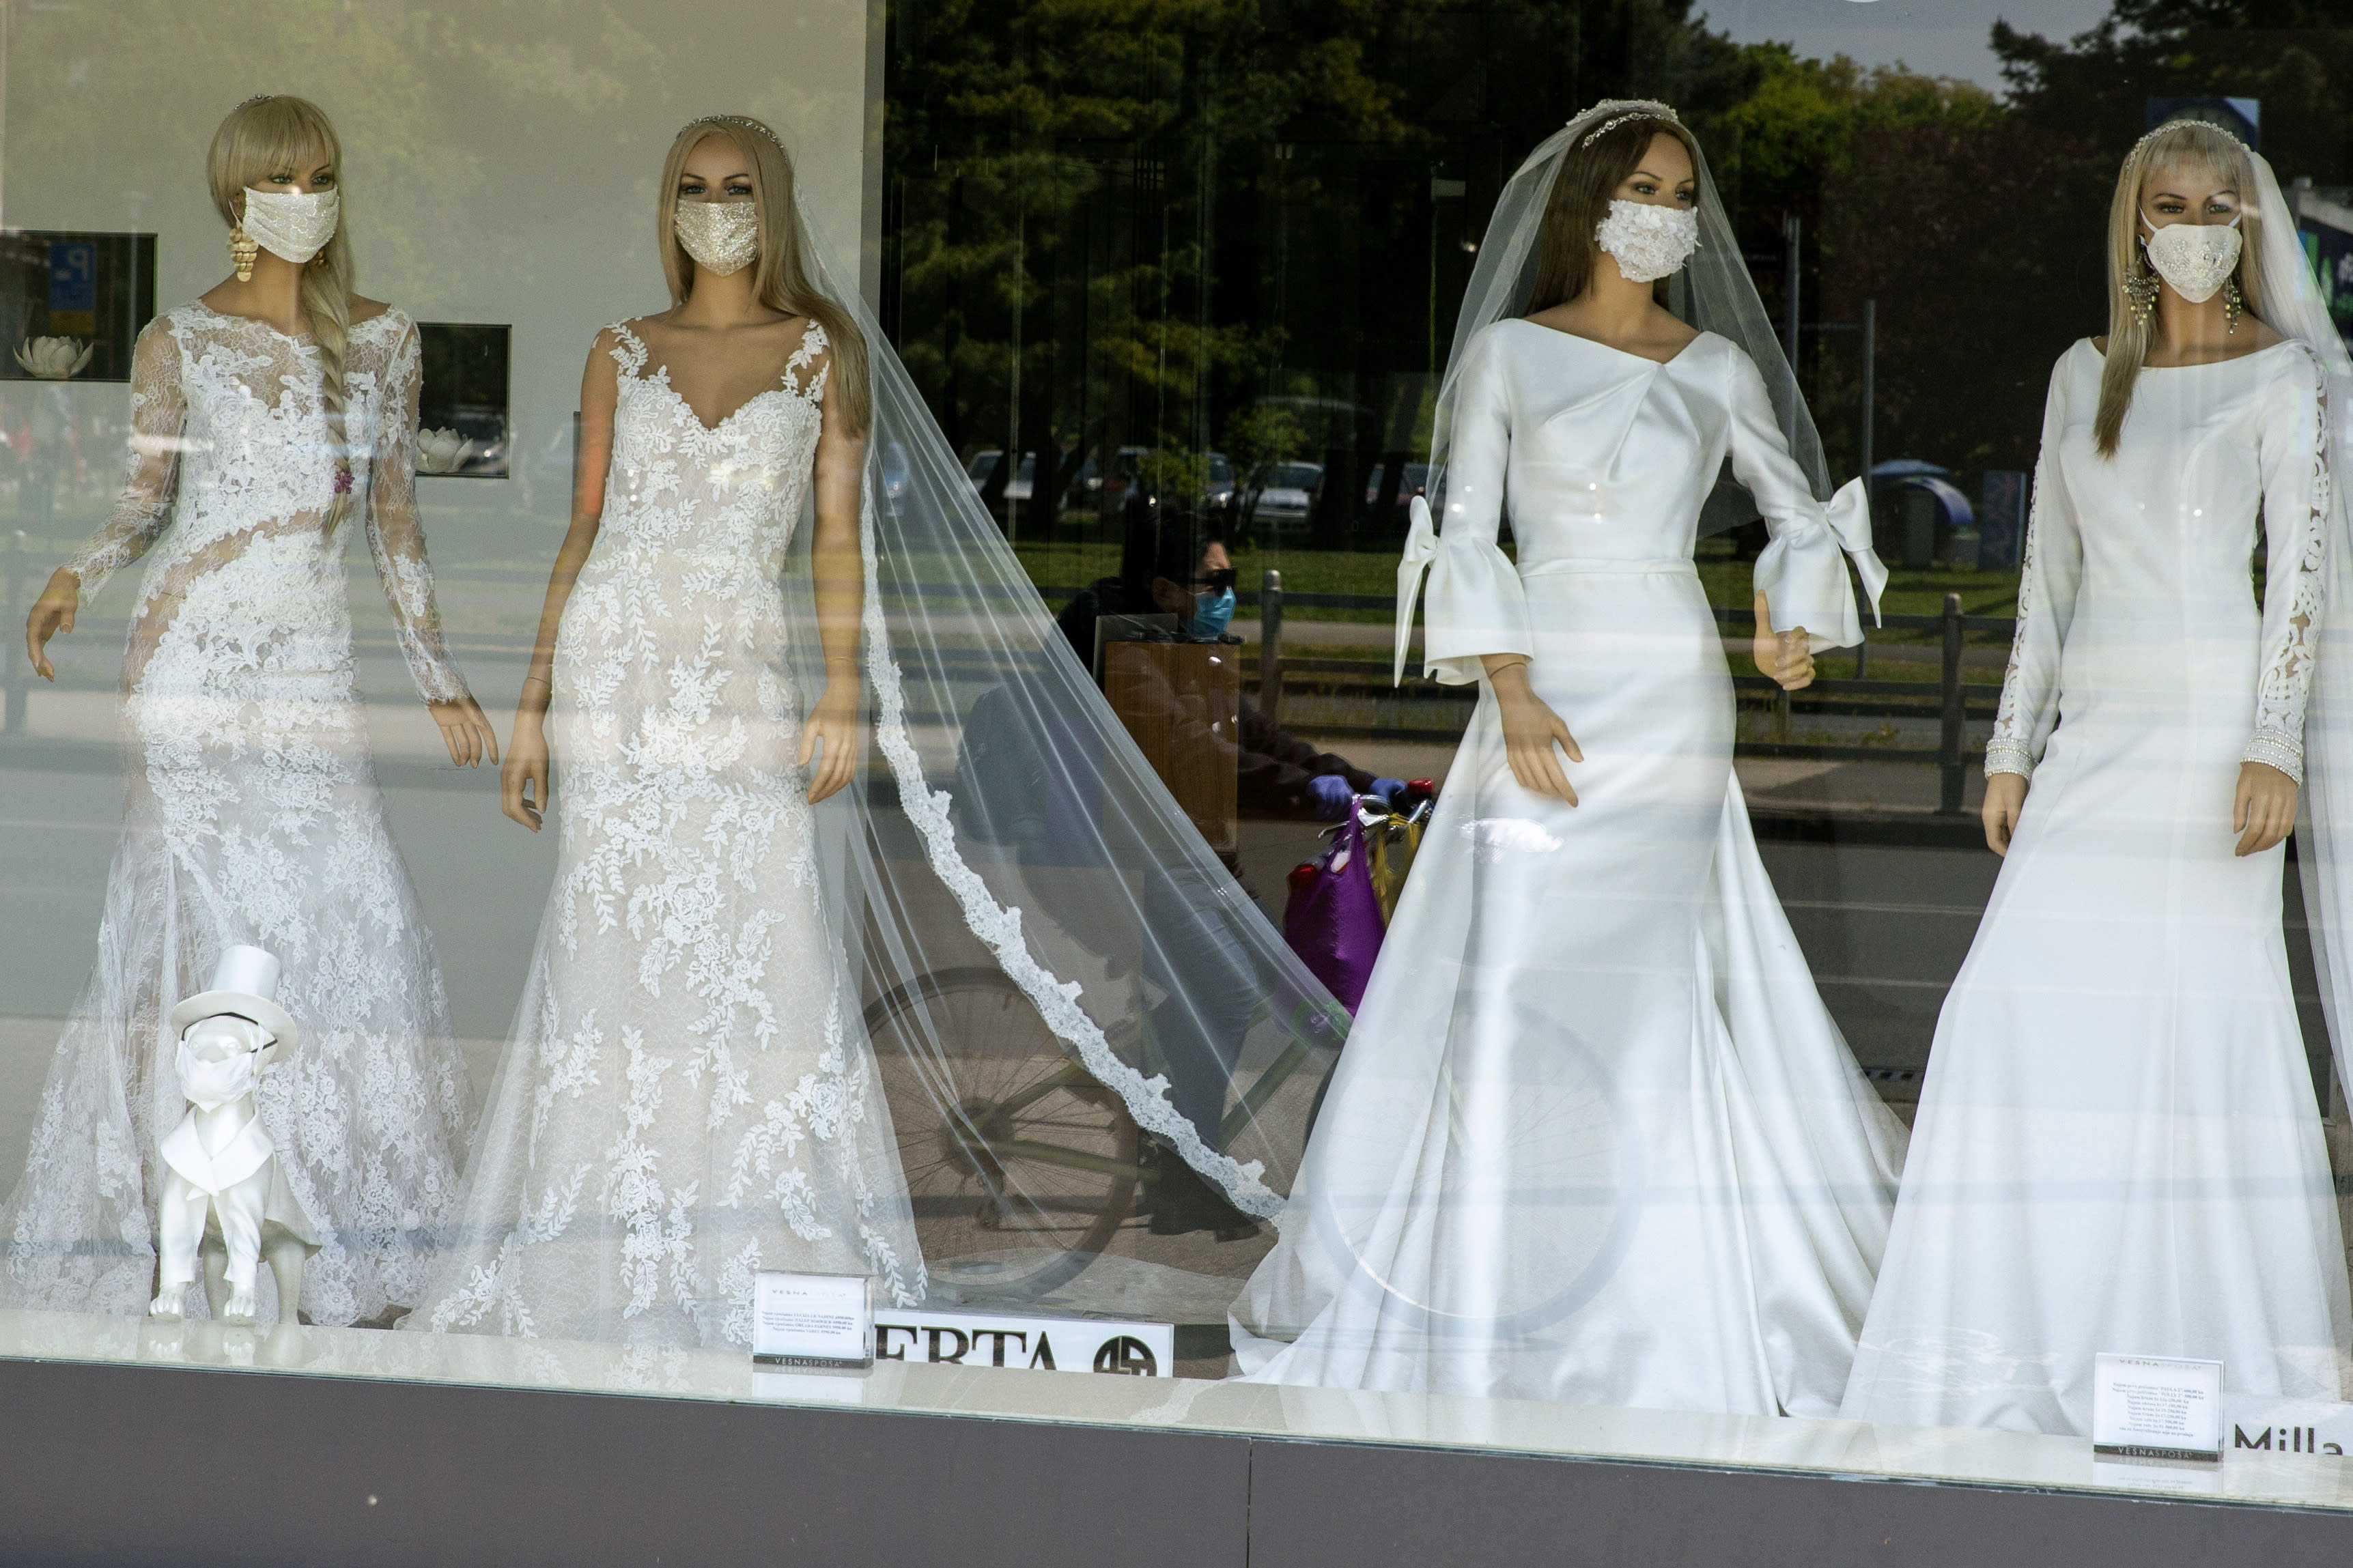 FILE - A masked cyclist is reflected in the window of a wedding dress store with mannequins wearing face masks, in Zagreb, Croatia on April 23, 2020. Now that weddings have slowly cranked up under a patchwork of ever-shifting restrictions, horror stories from vendors are rolling in. Many are desperate to work after the coronavirus put an abrupt end to their incomes and feel compelled to put on their masks, grab their cameras and hope for the best. (AP Photo/Darko Bandic, File)